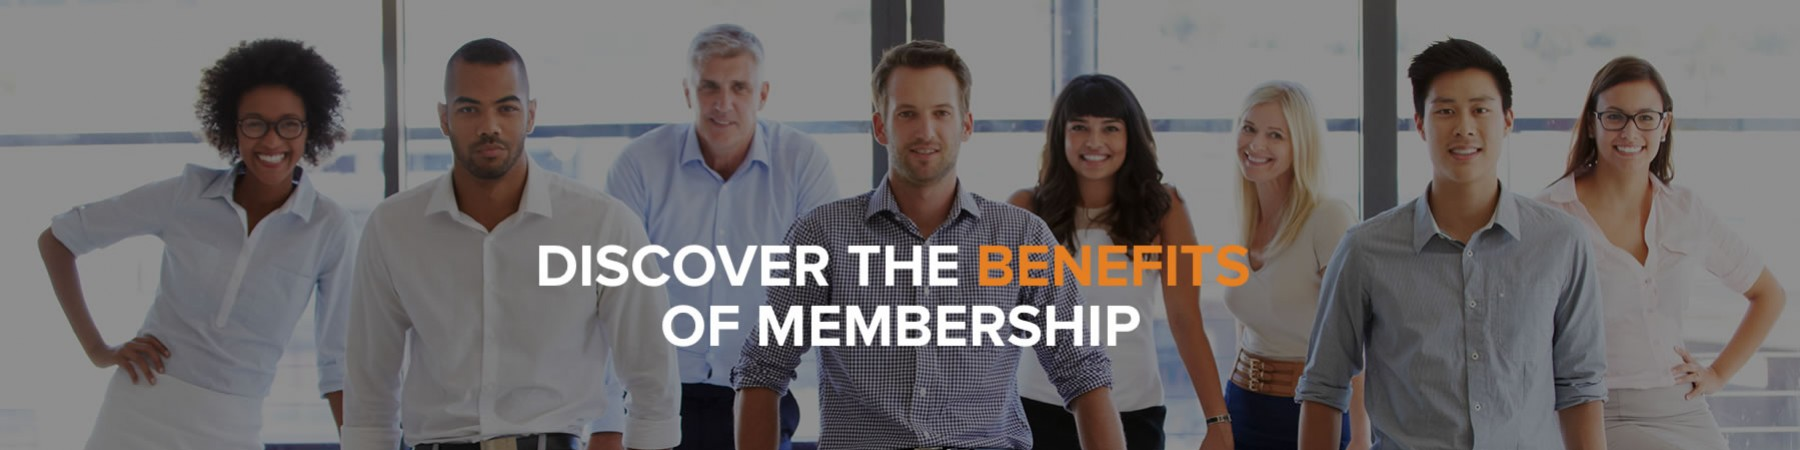 Discover the Benefits of Membership